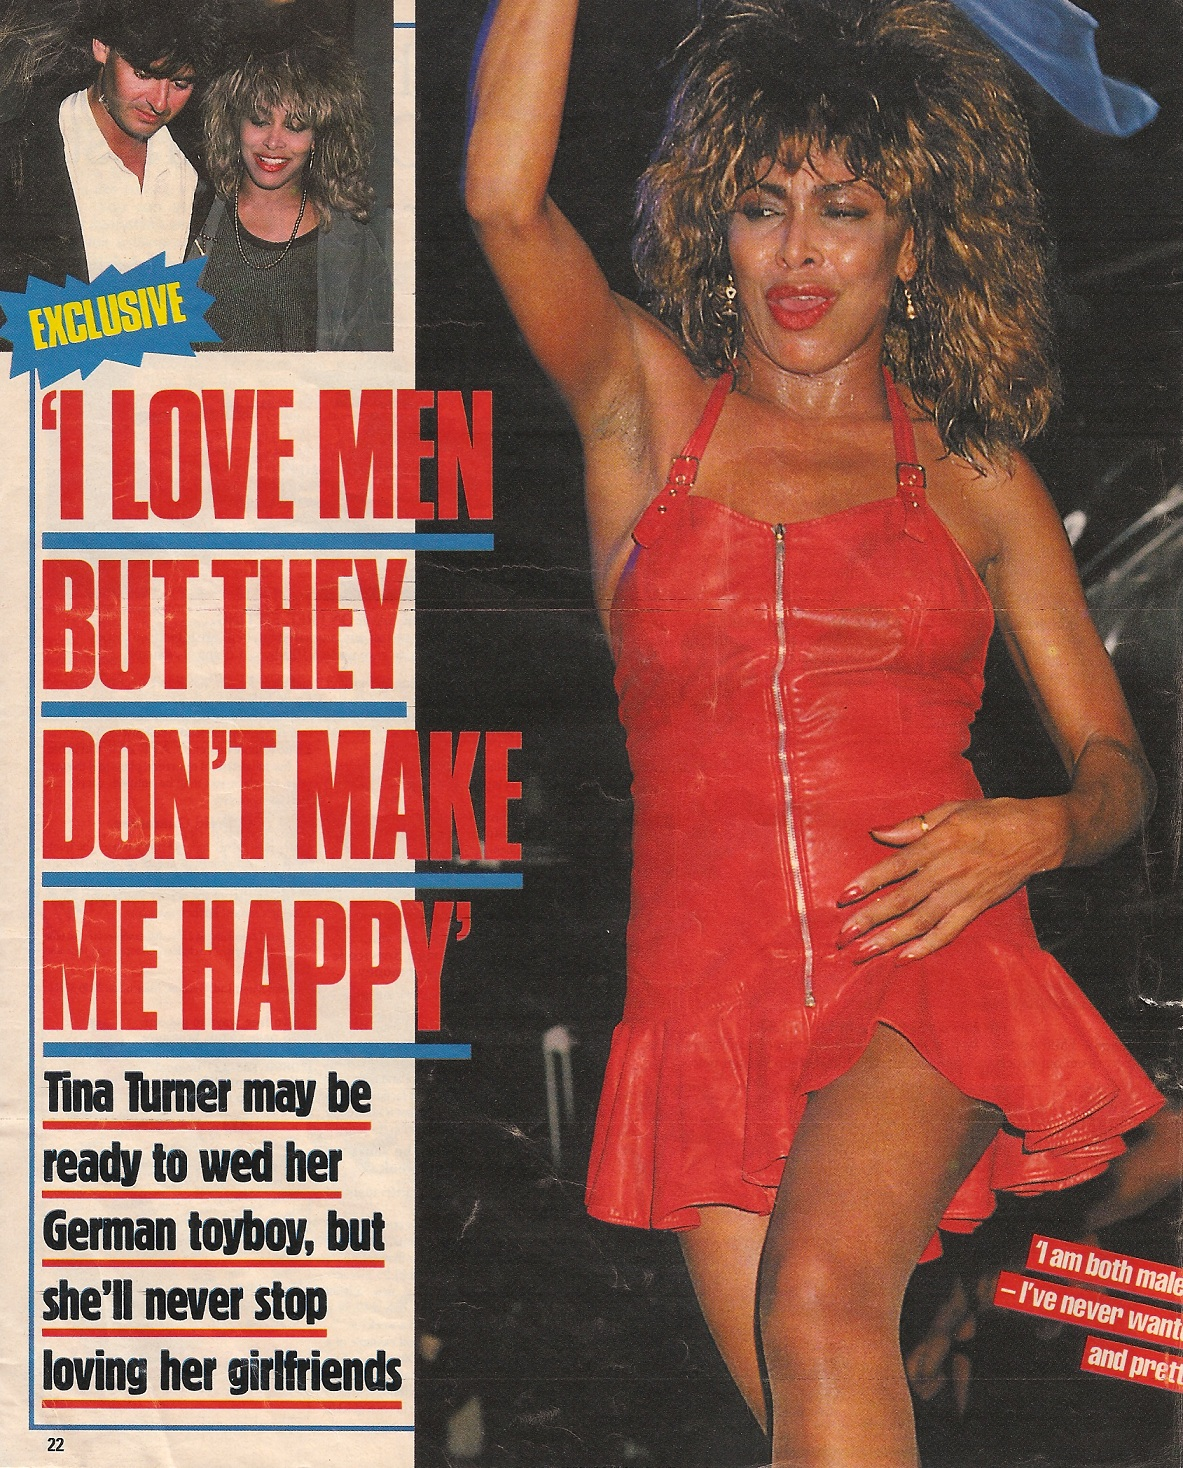 """I will make Tina happy"" says Erwin 